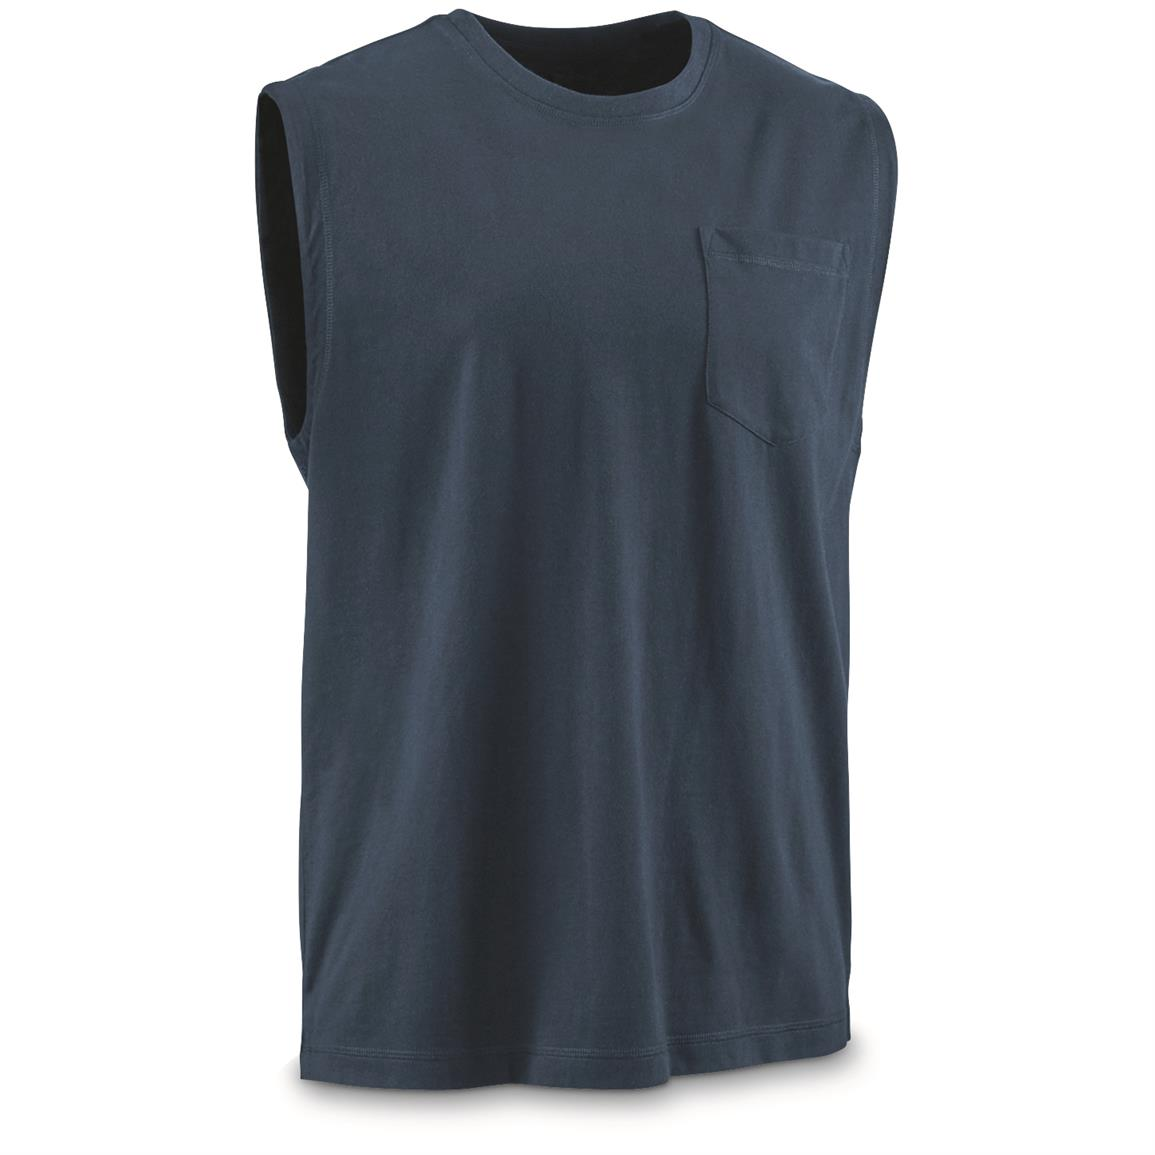 Guide Gear Men's Stain Kicker Sleeveless Pocket T Shirt With Teflon, Indigo Blue